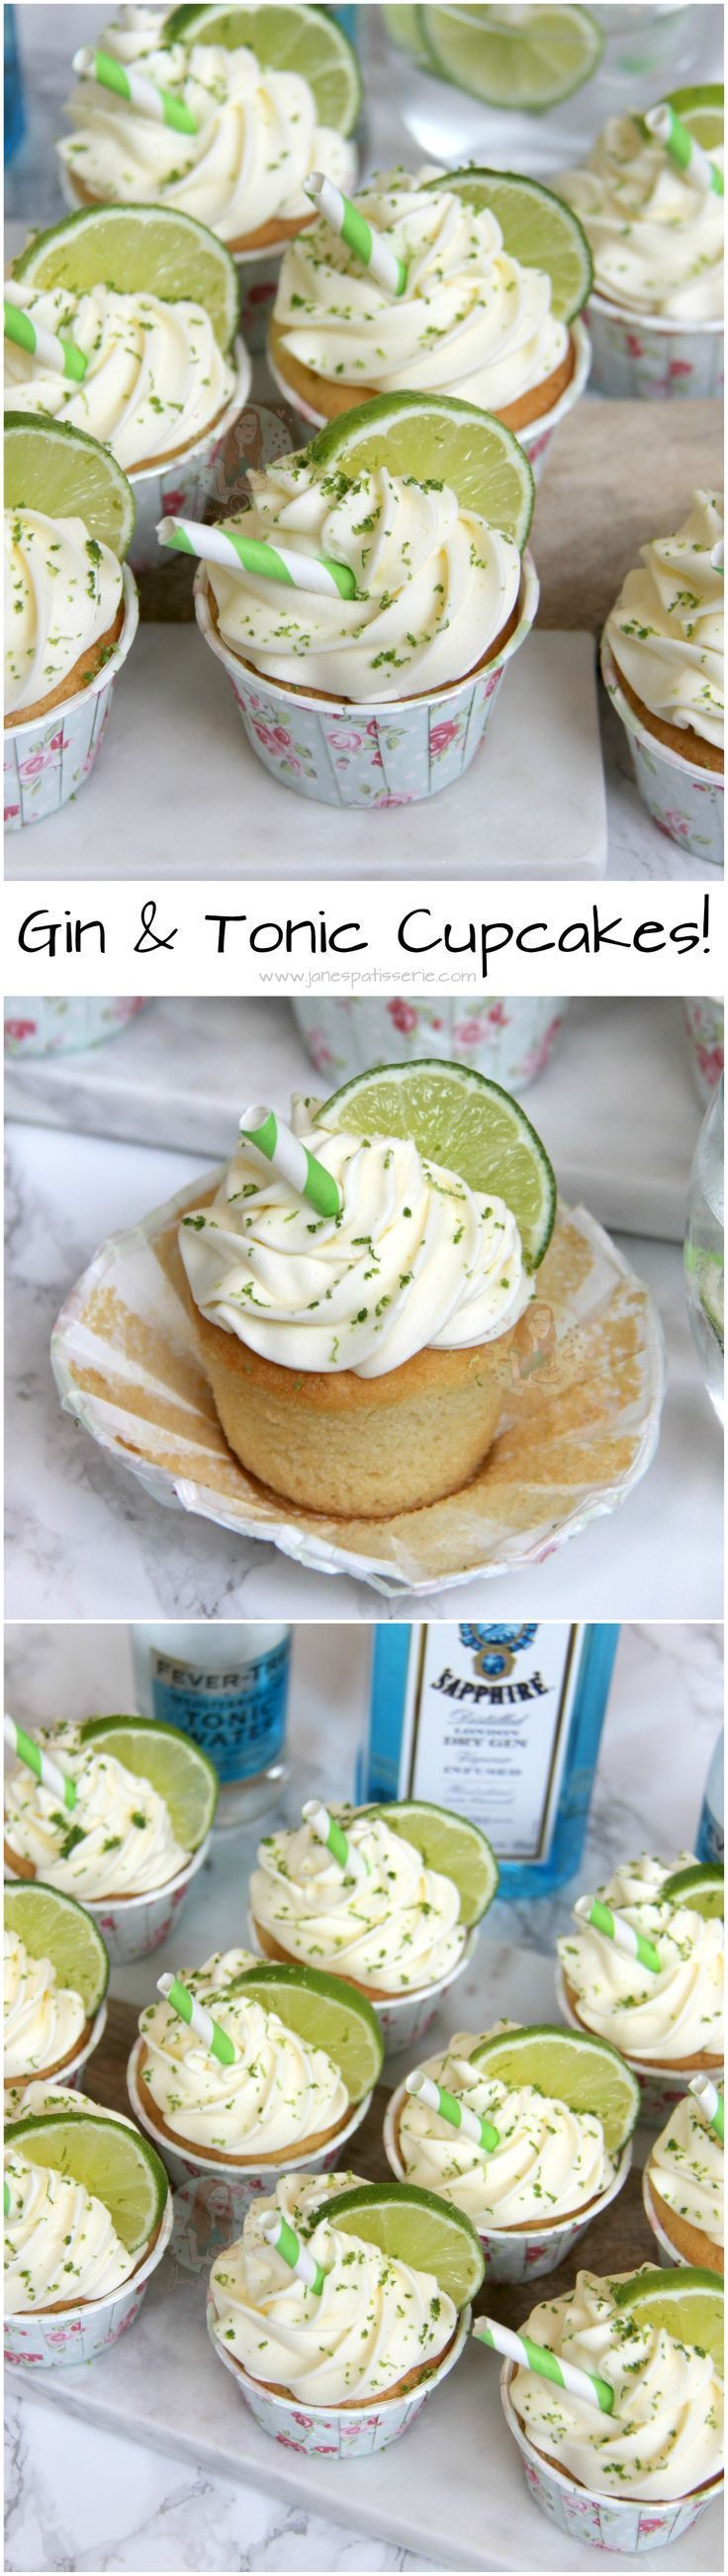 Gin & Tonic Cupcakes! � Soft and Delicious Gin & Tonic Sponges, with Gin & Tonic Buttercream Frosting, Lime, and a little Straw to Decorate!